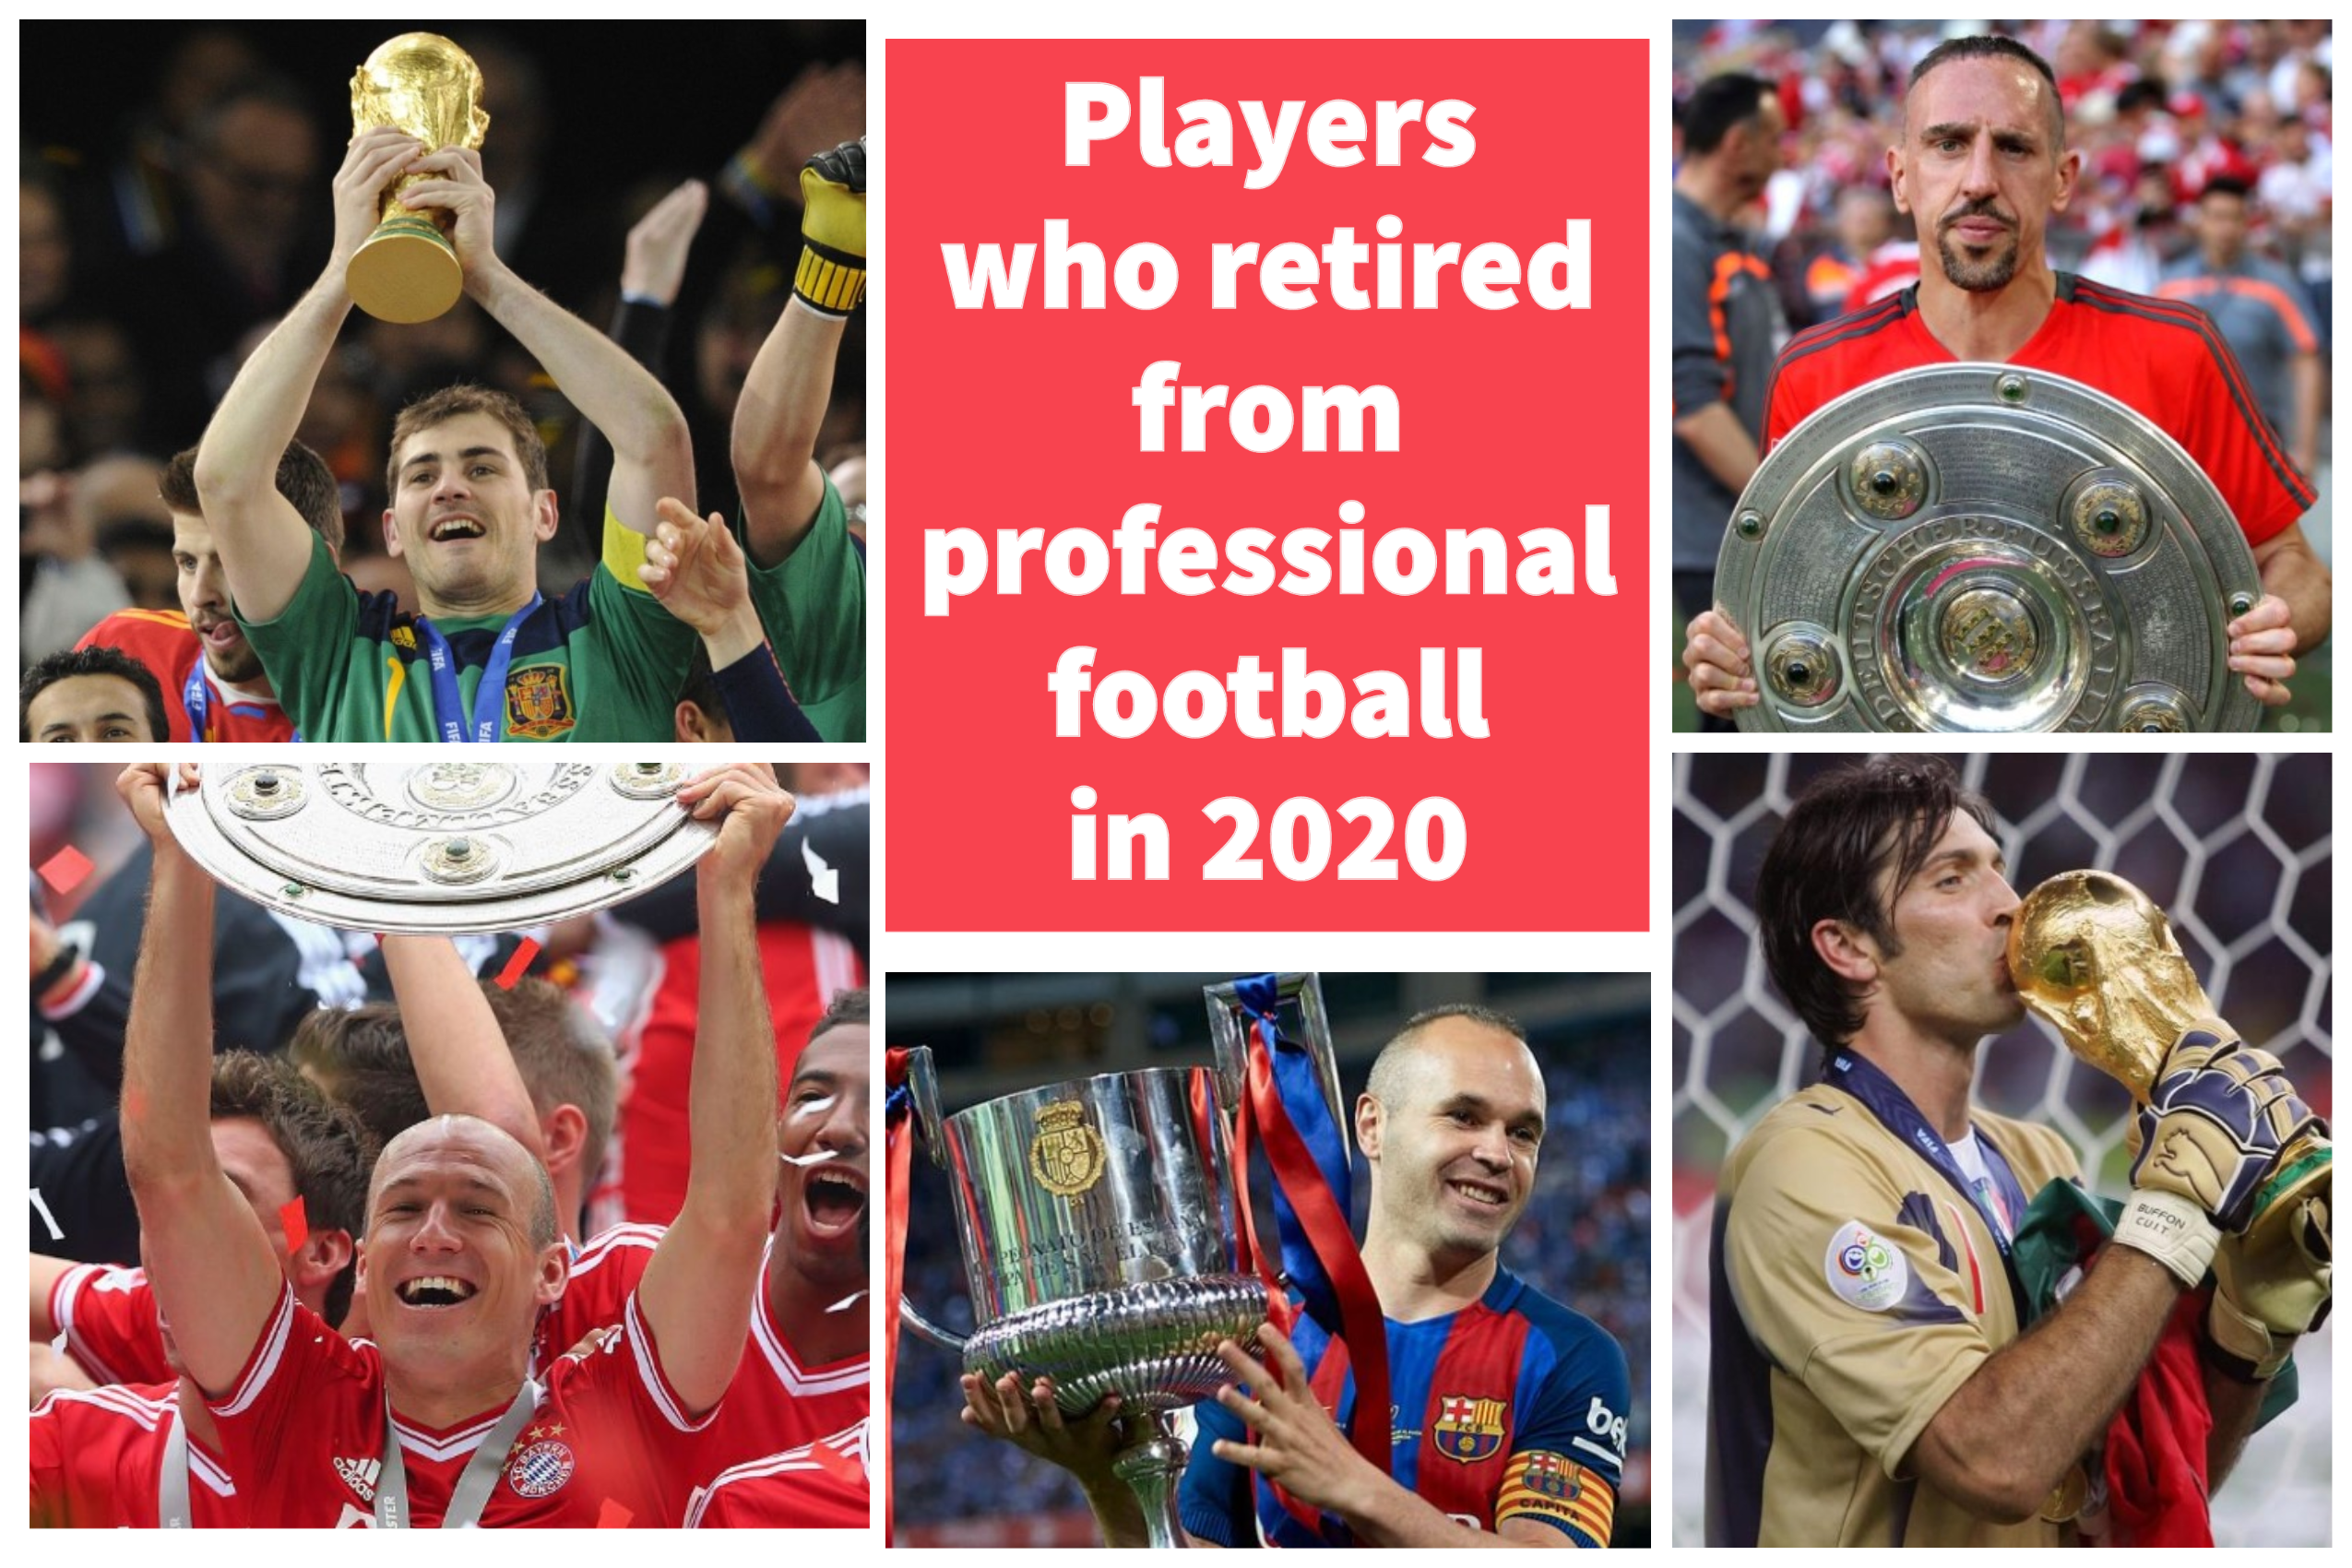 Players who retired from professional football in 2020